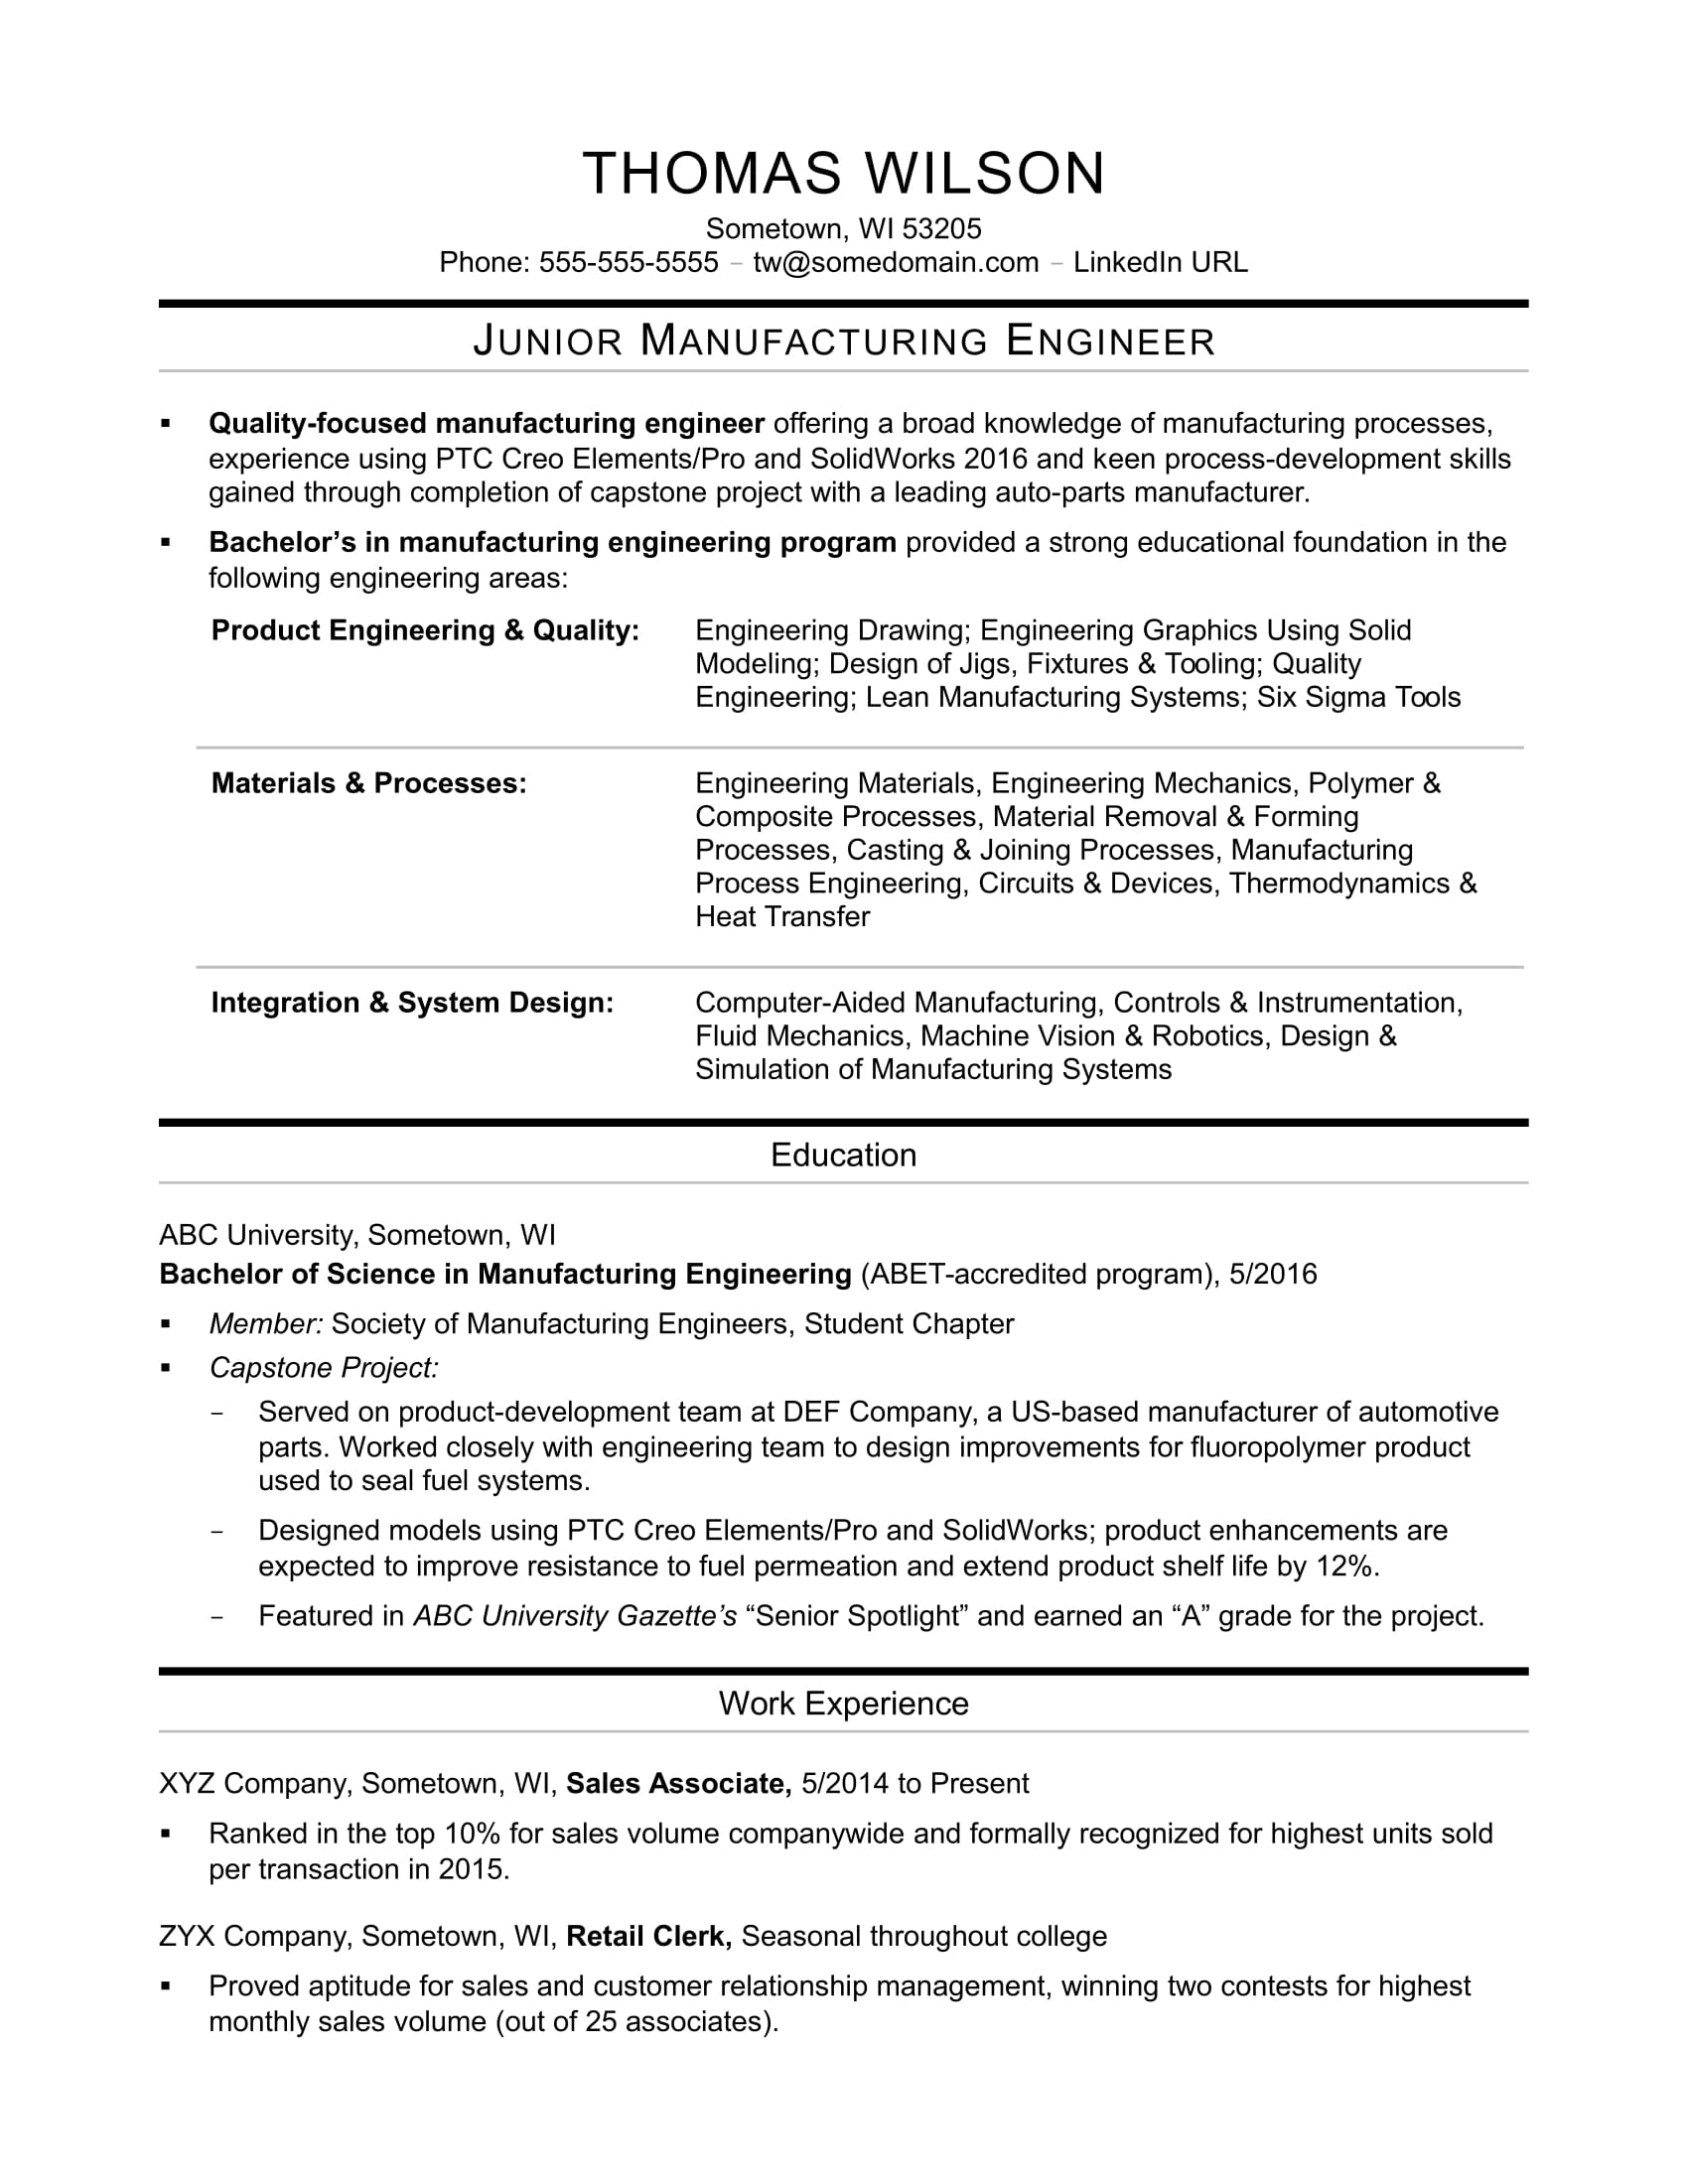 Sample Resume For An Entry Level Manufacturing Engineer  Resume For Manufacturing